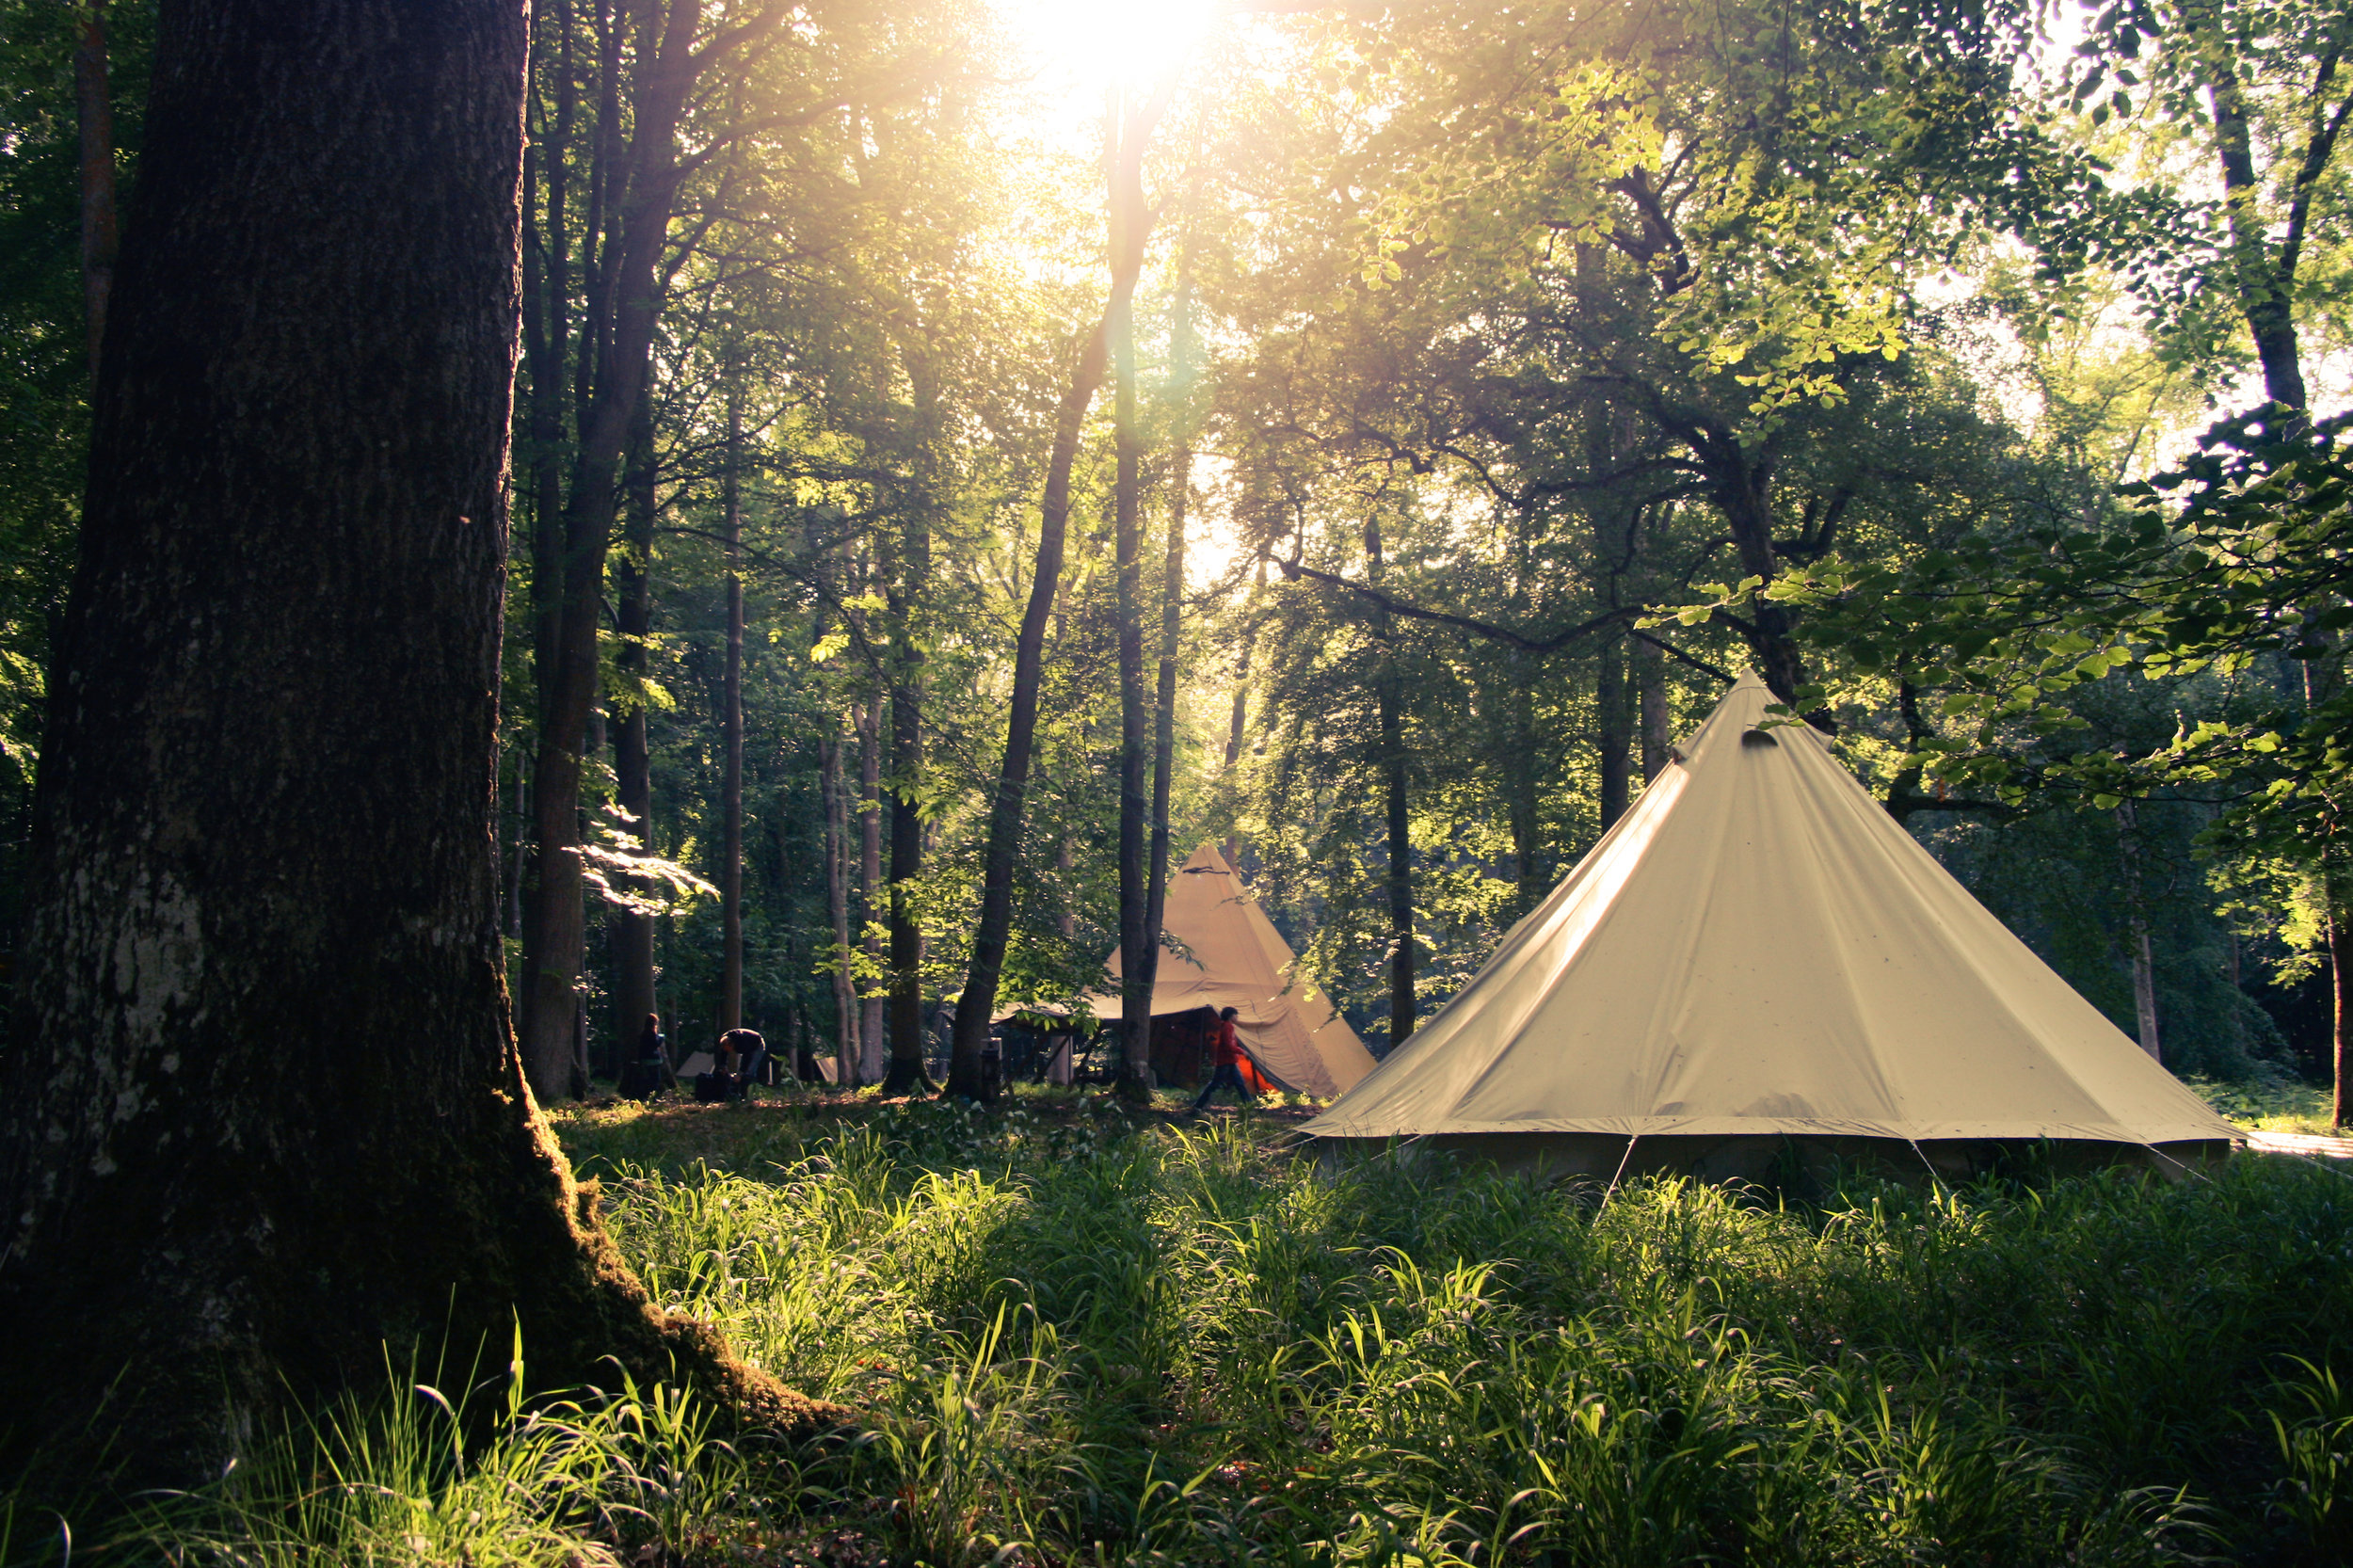 Camp Wilderness summer camps for kids. Tipi bell tents